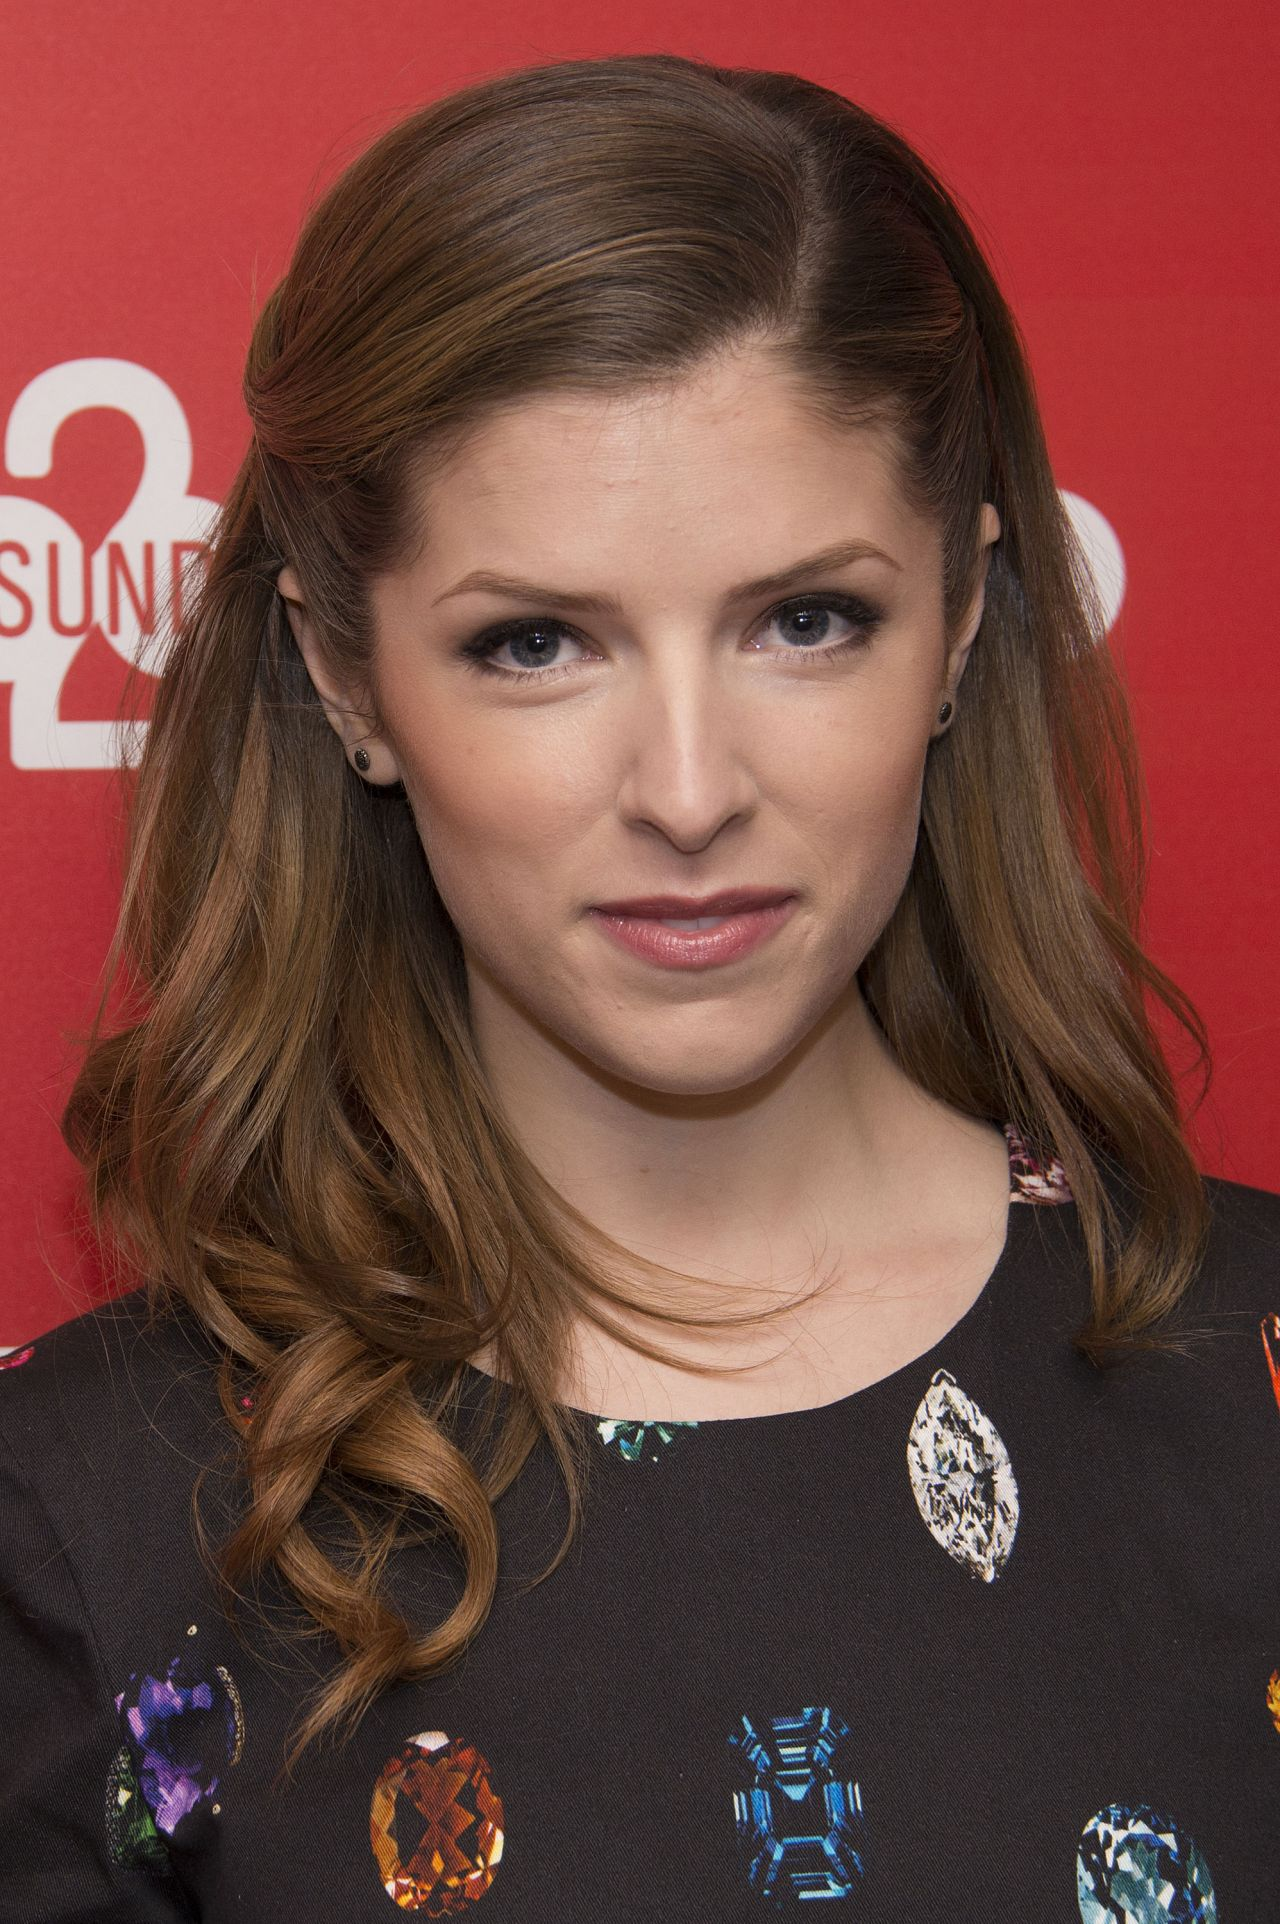 Anna Kendrick - THE VOICES Premiere - Sundance Film Festival in Park City, January 2014)